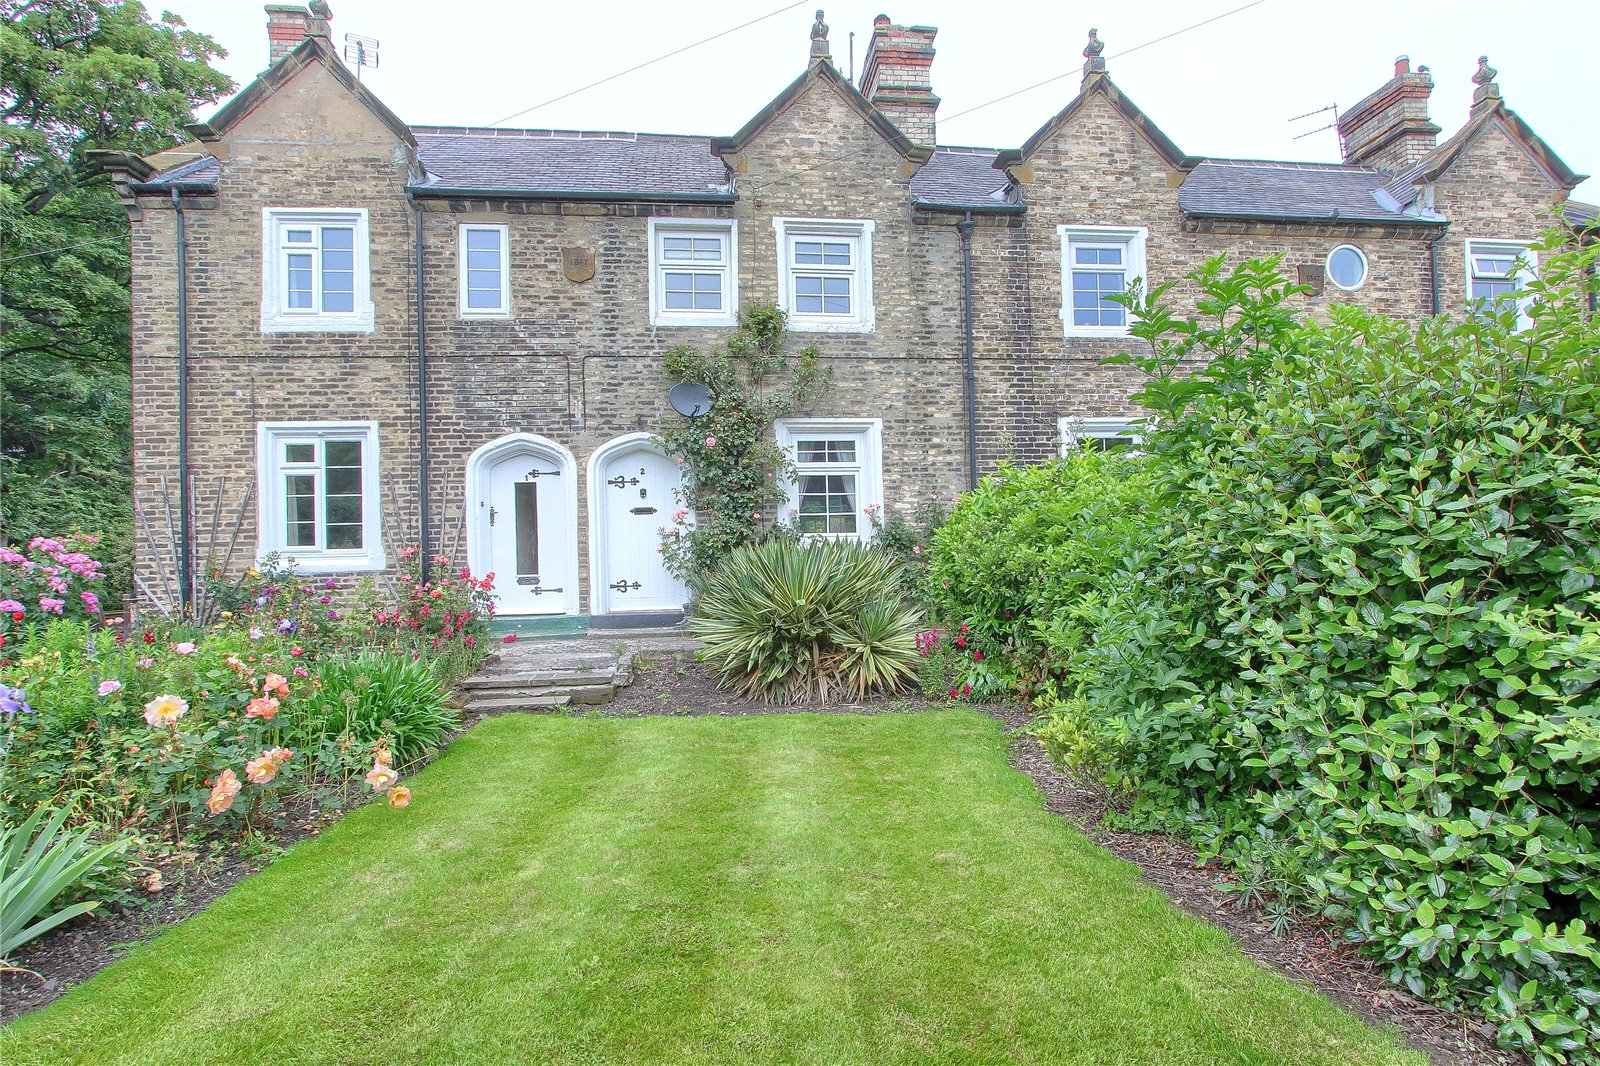 3 bed house for sale in The Cottages, Kirkleatham 1